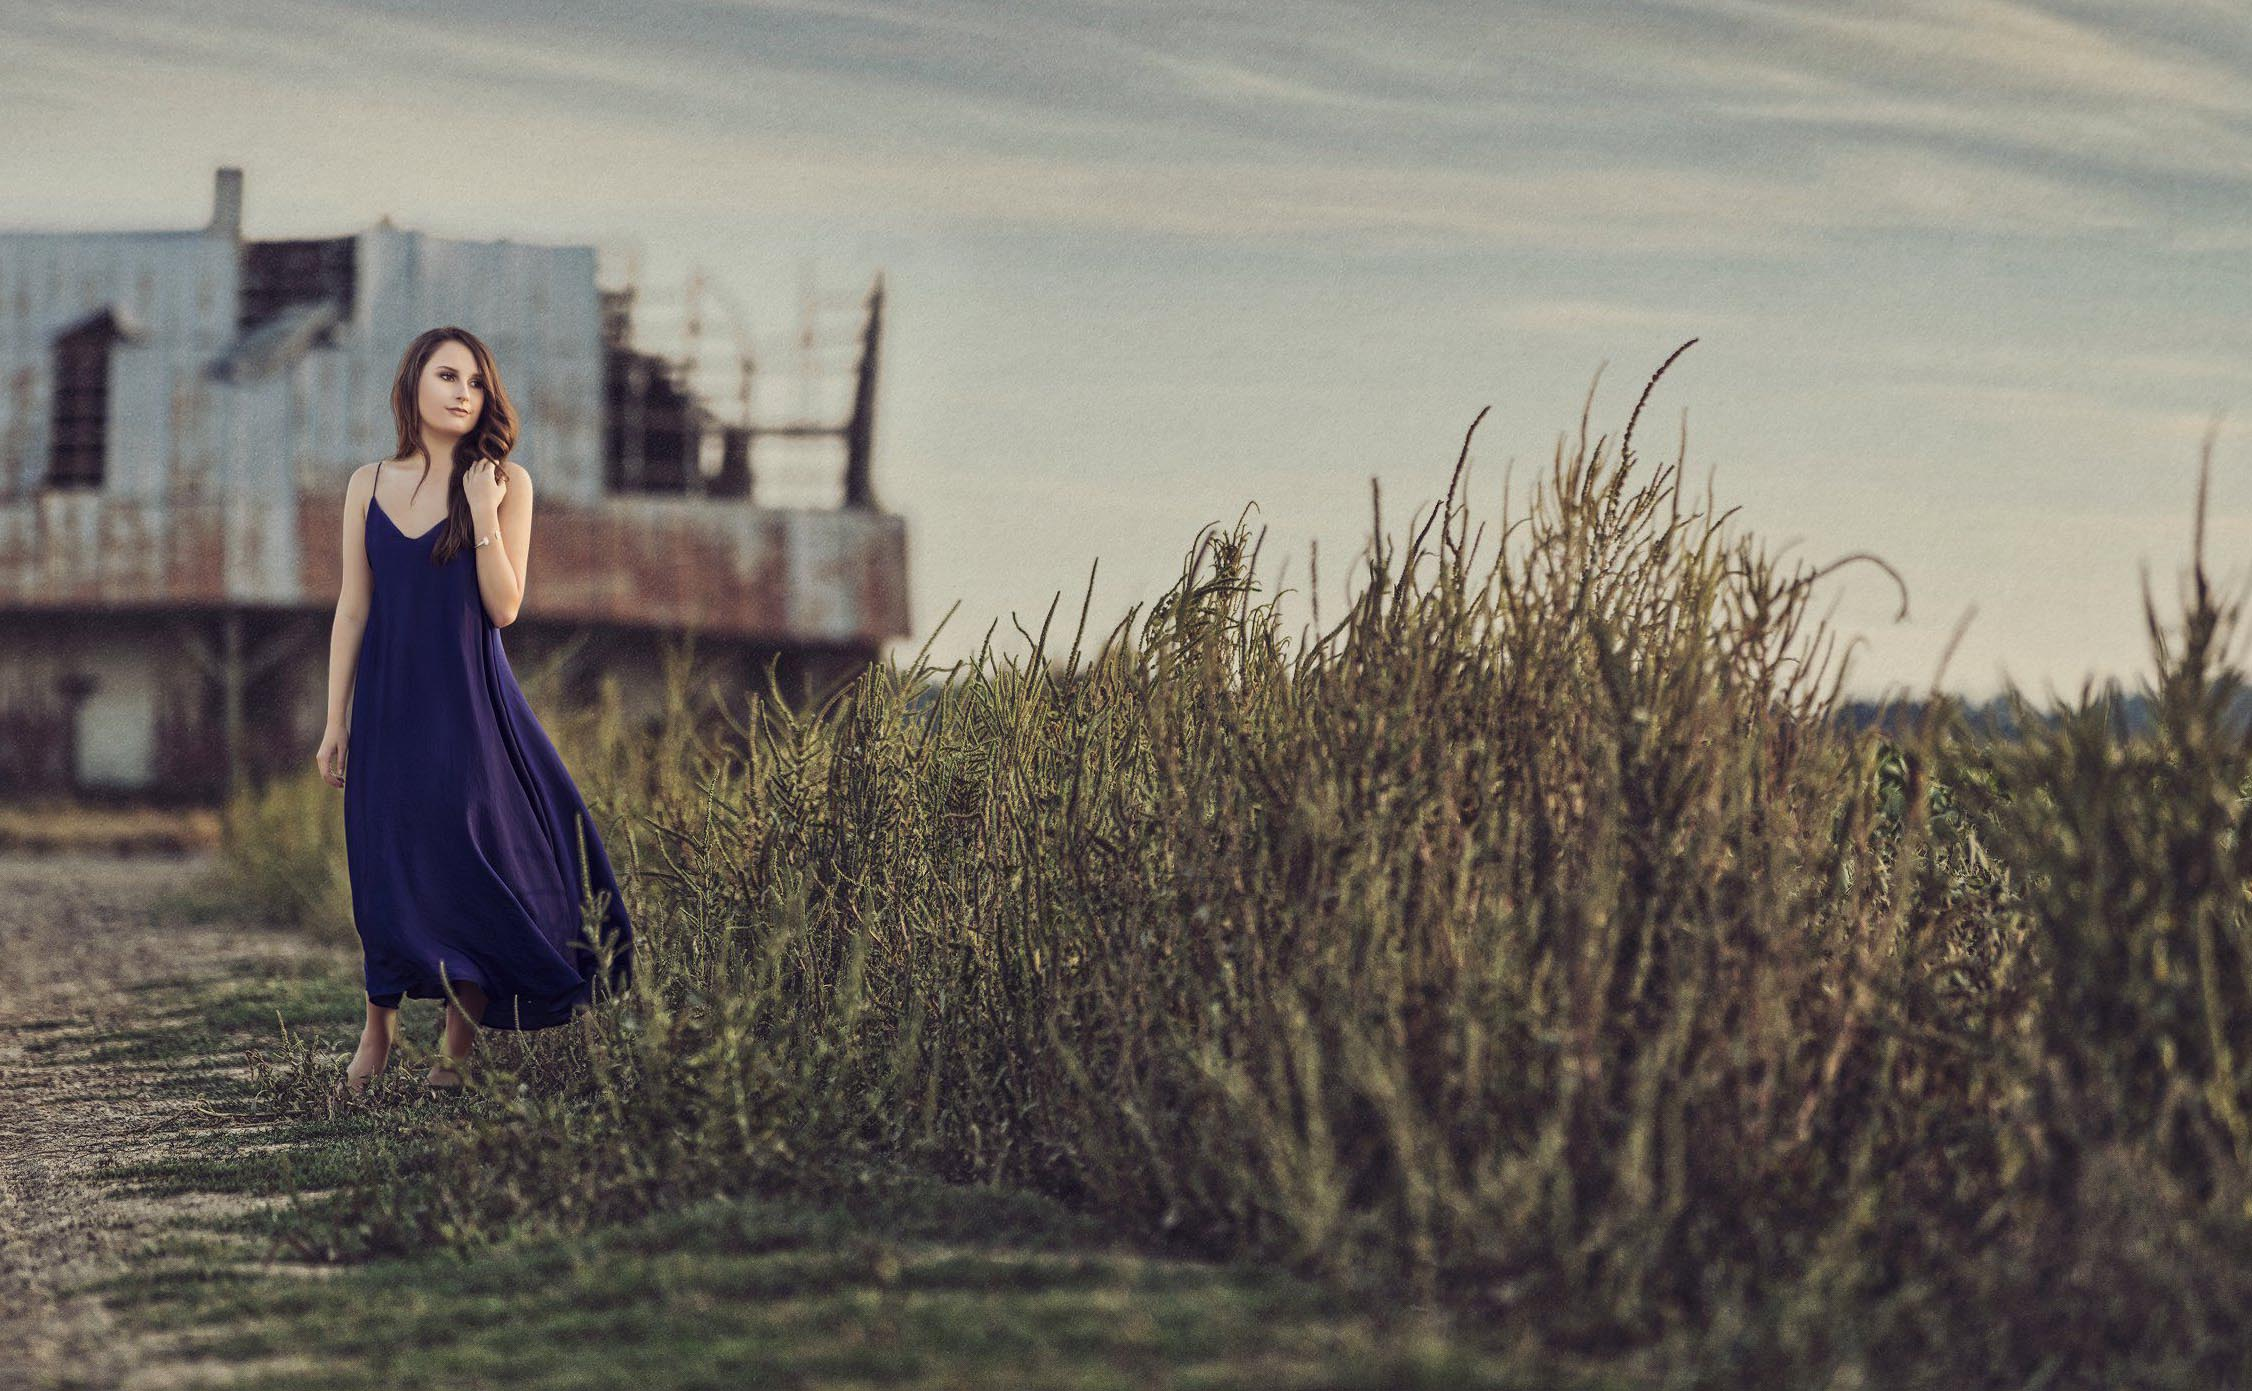 jodie-kelly-photography-senior-pictures-little-rock.jpg